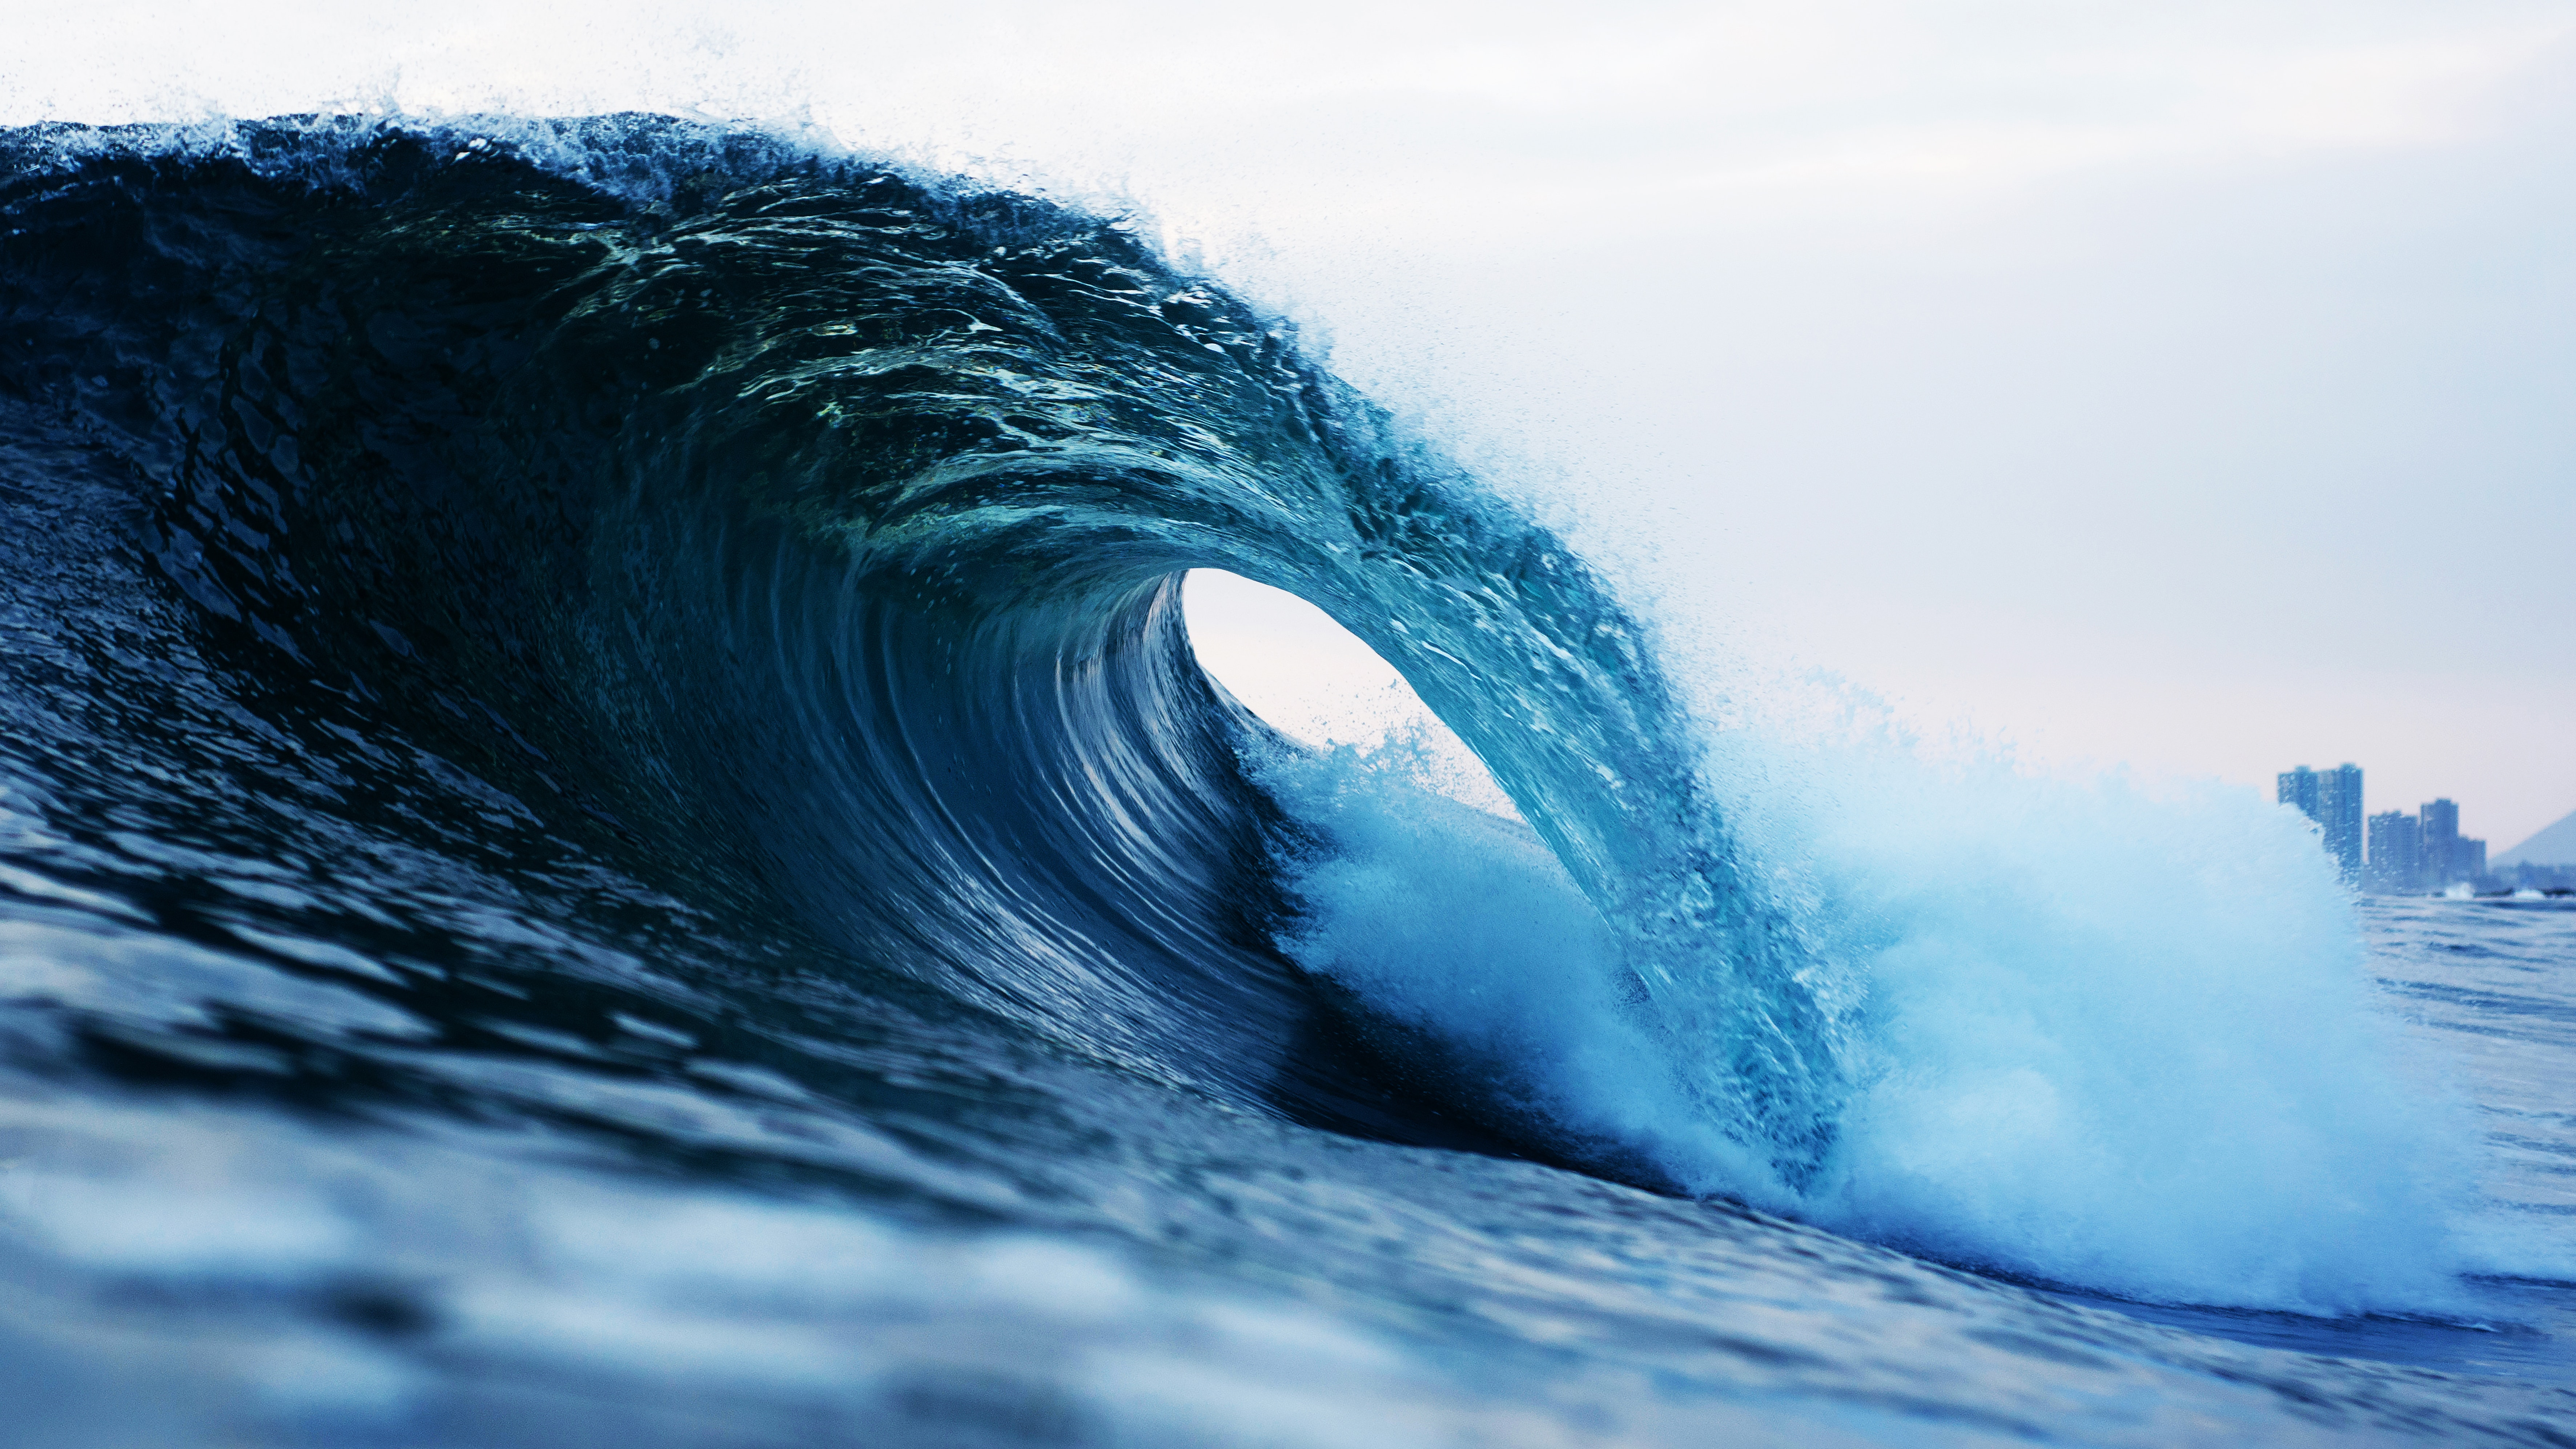 Water Wave Waves Photography 2186547 Hd Wallpaper